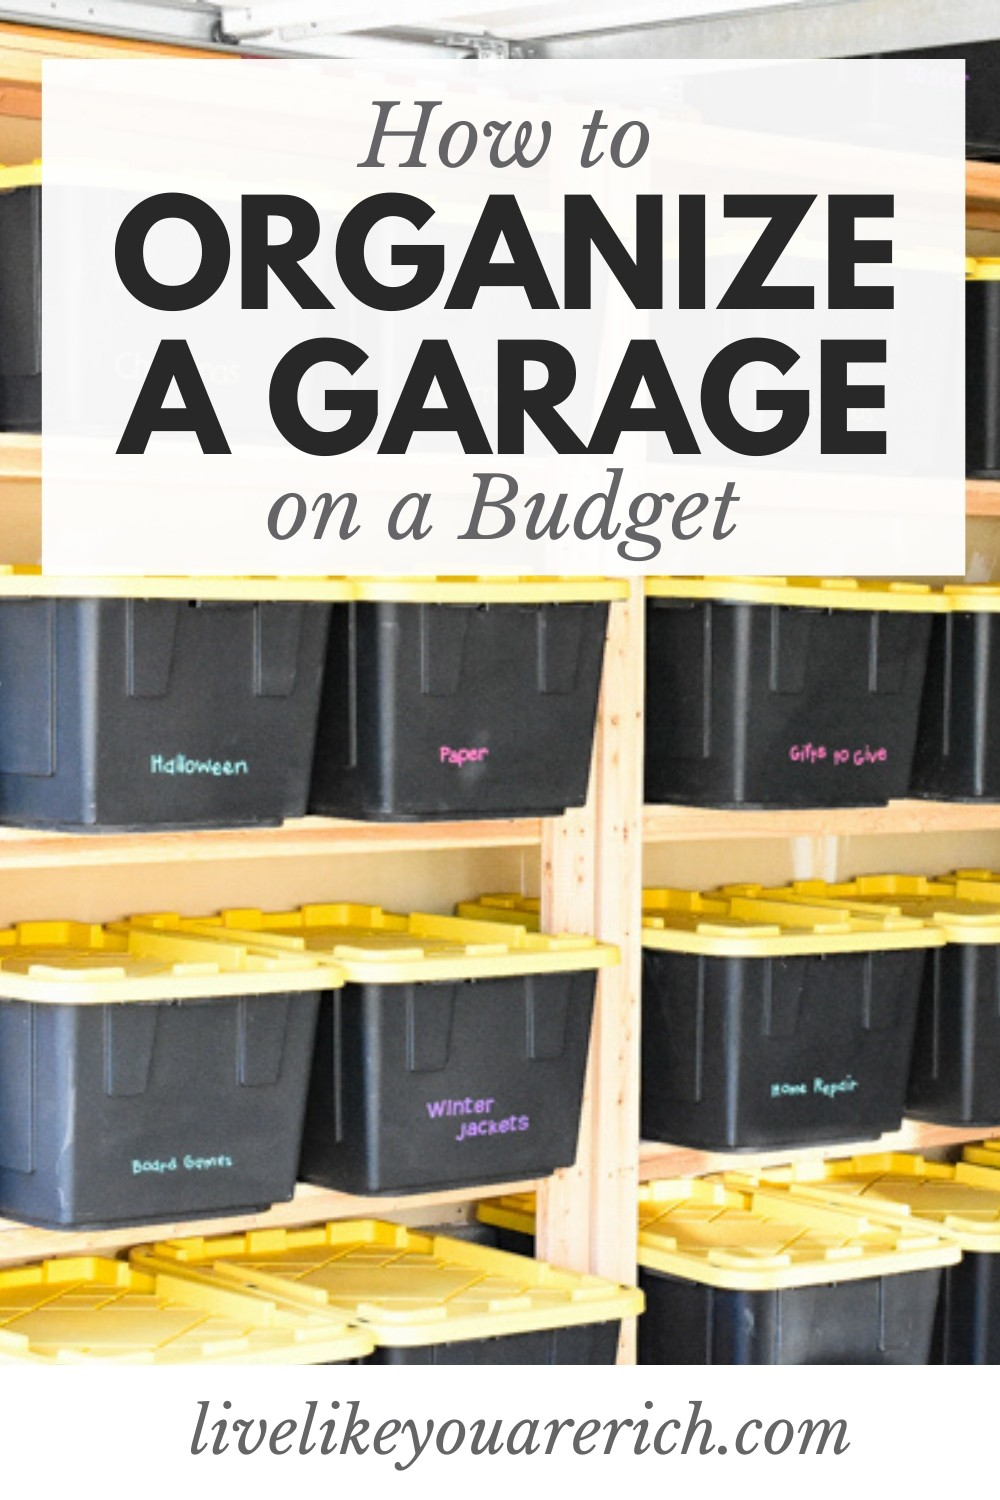 I've done my best to keep my garage organized, but with very little storage, it has been difficult. After some research, I decided to build wood storage shelves and the result has been astounding. My garage now is cluttered free. I'm sharing how I organize my garage the best way on a budget.